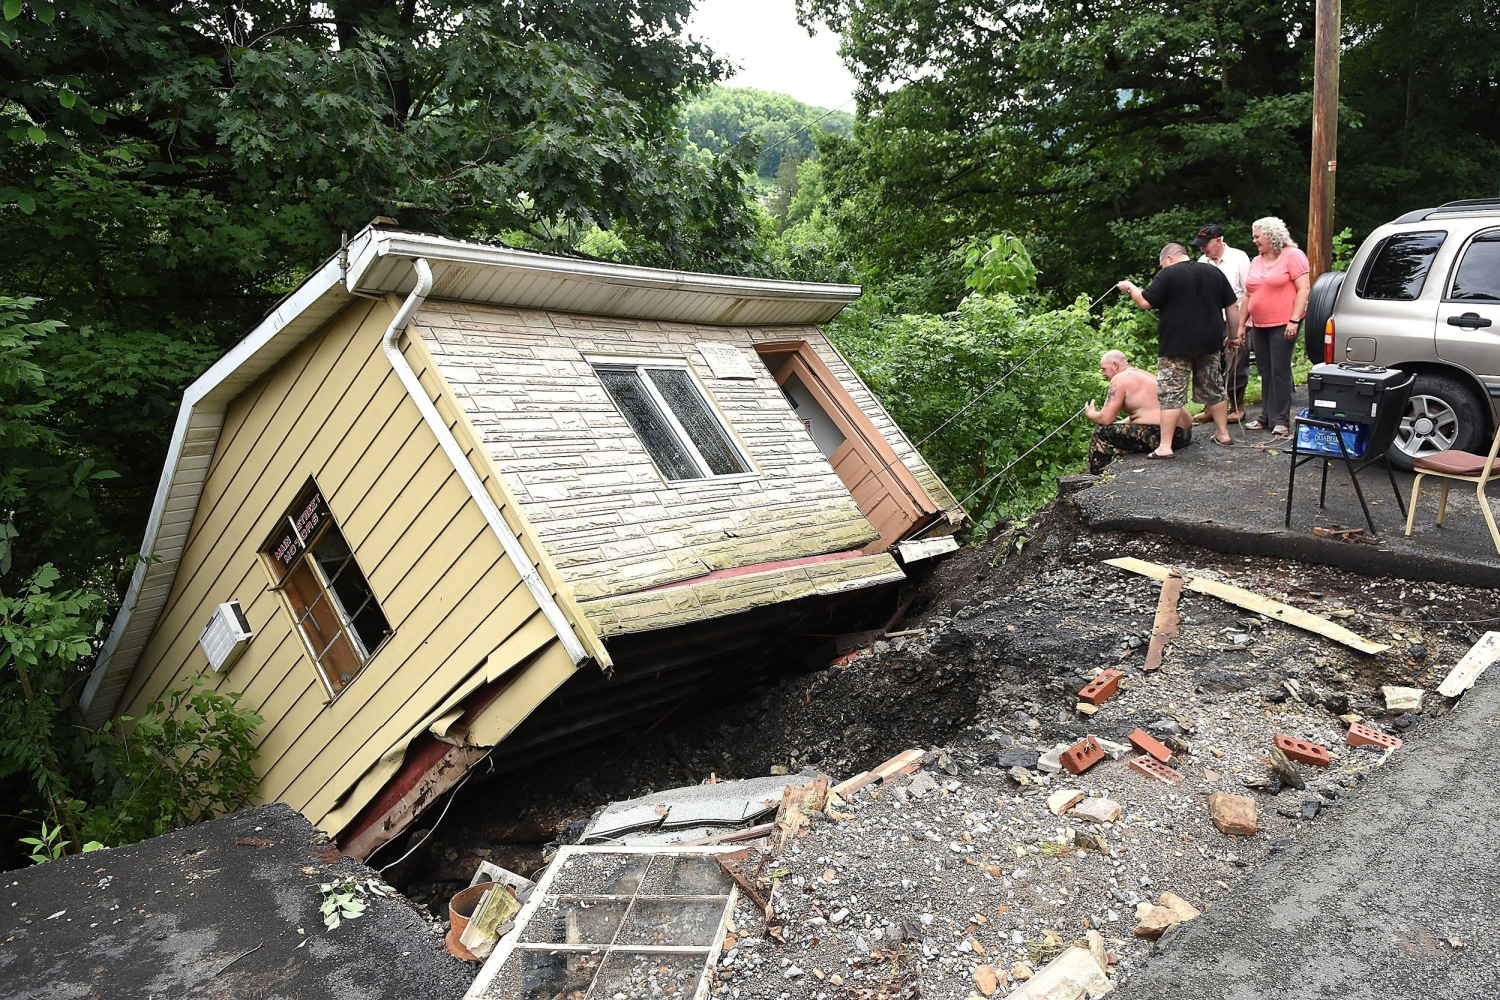 West Virginia Flooding: At Least 24 Dead as Federal Disaster Declared ...